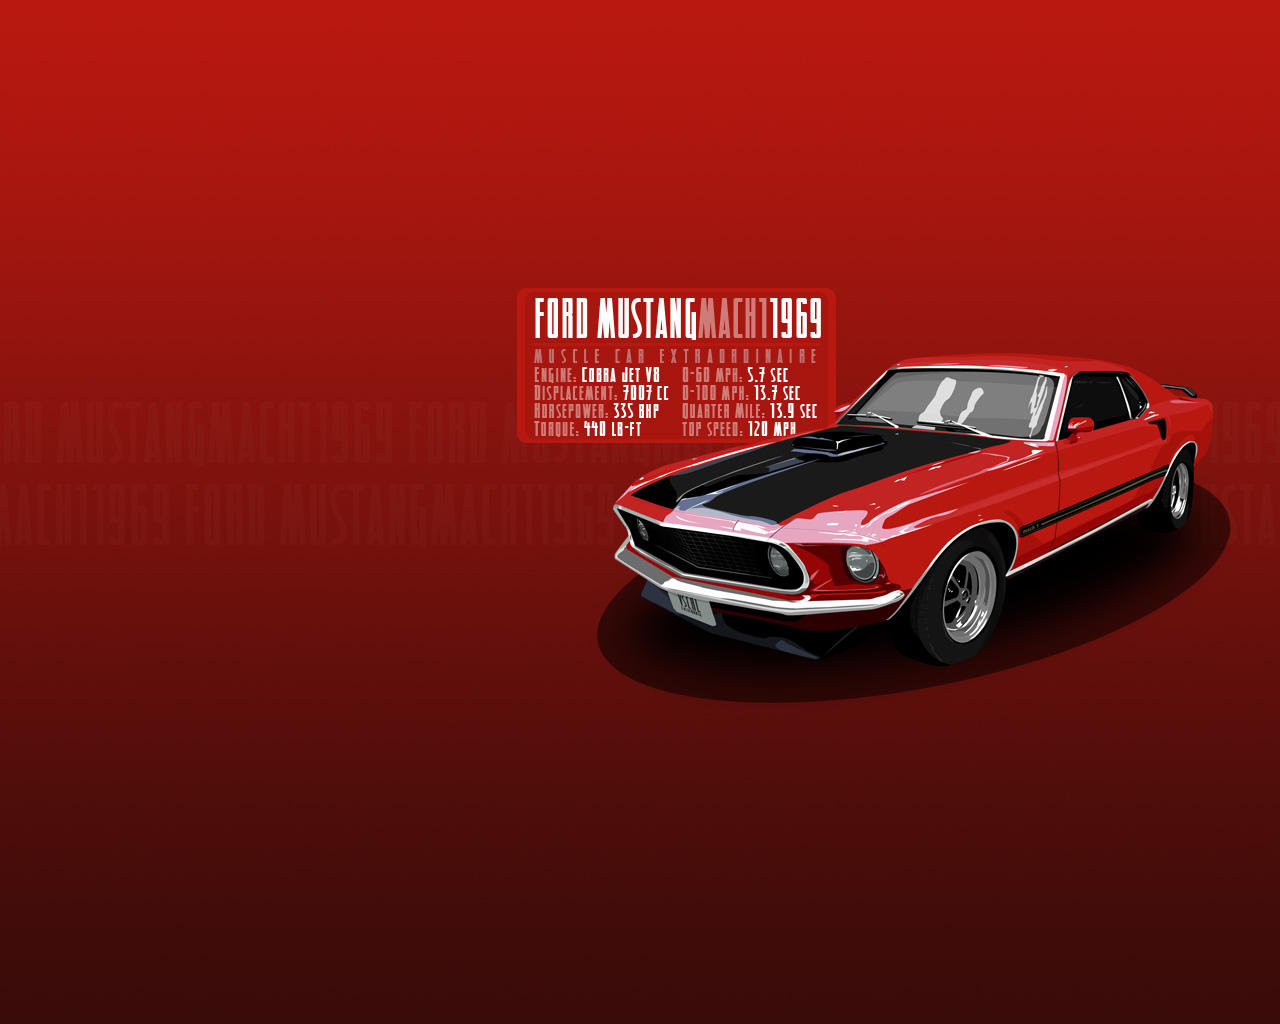 ford mustang mach 1 1969 - wp